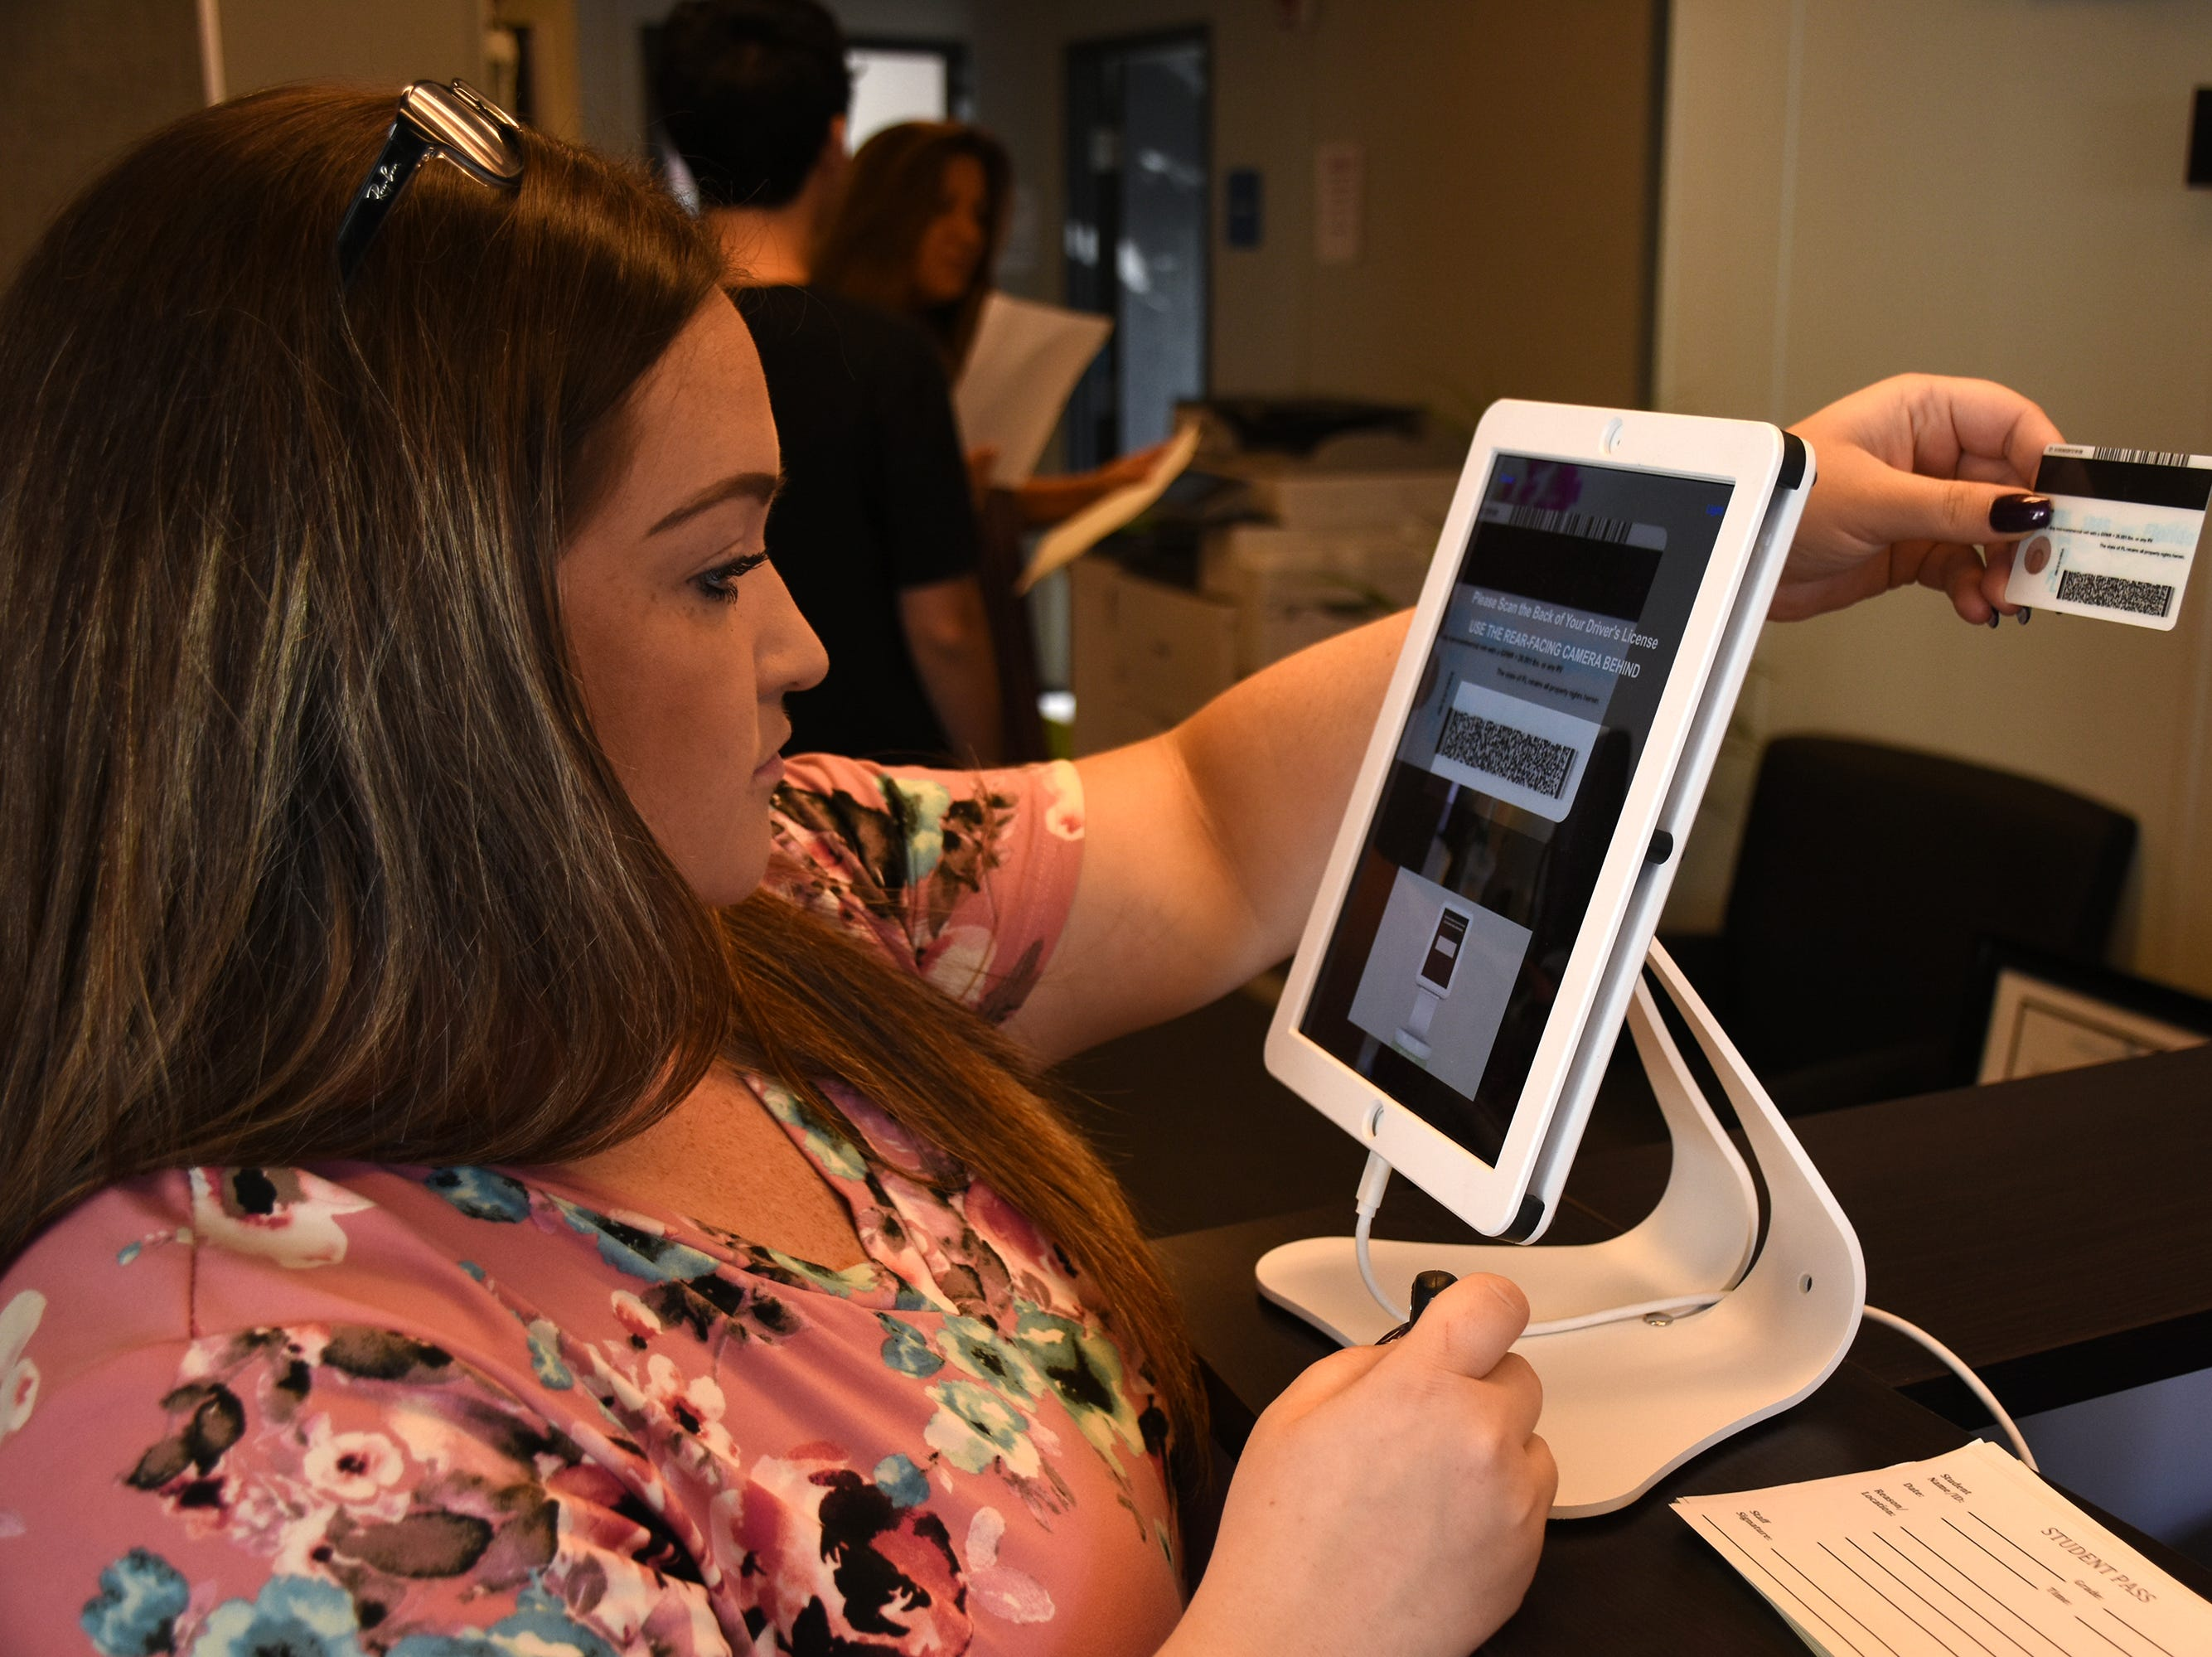 School secretary Meagan Carr scans a visitor's ID at Marco Island Academy. Marco Island students, along with all of Collier County, returned to school for the first day of classes in the new school year on Wednesday.